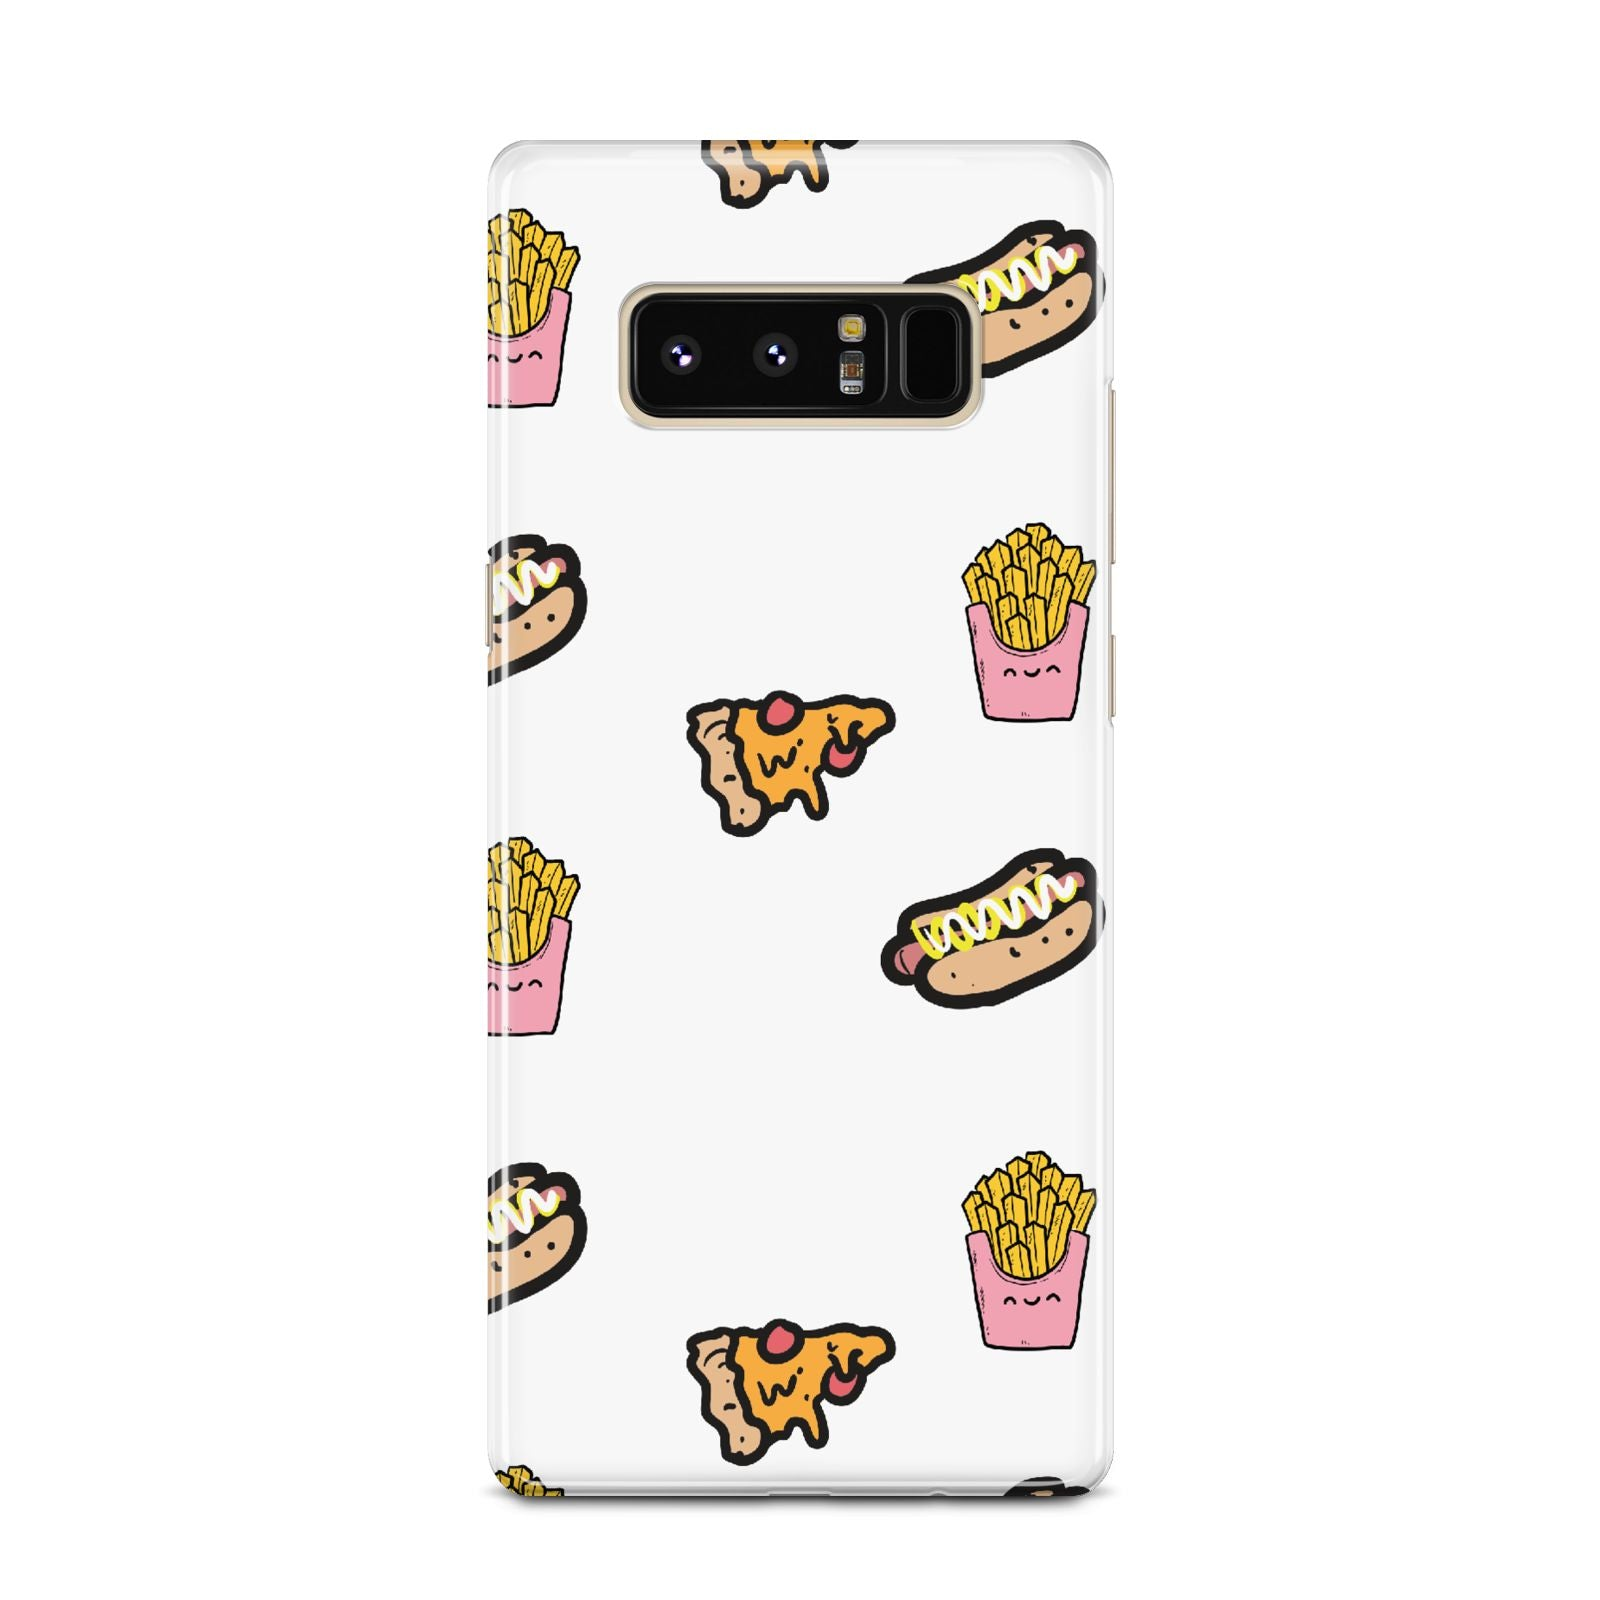 Fries Pizza Hot Dog Samsung Galaxy Note 8 Case